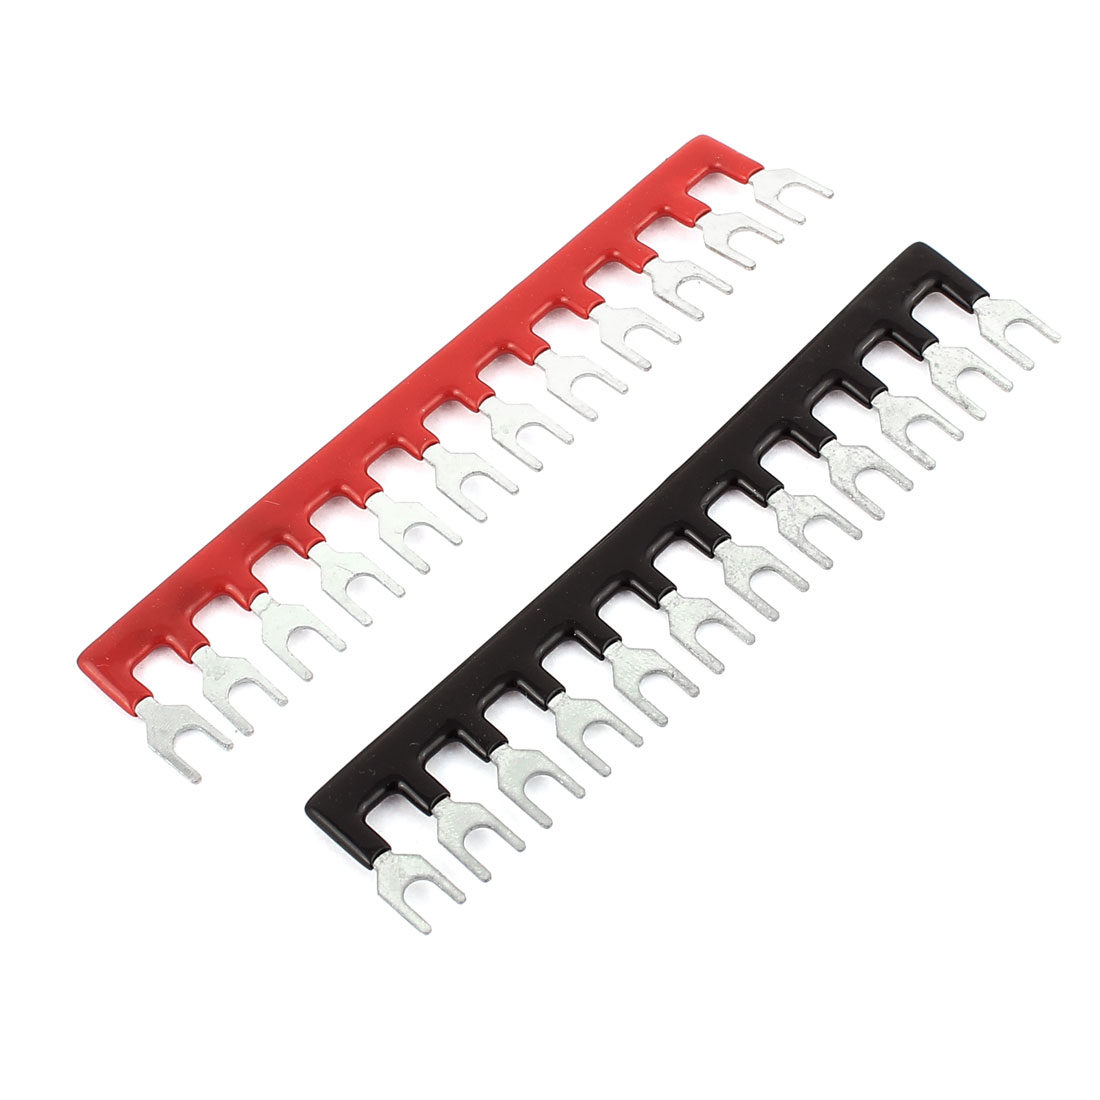 2 Pcs 12 Postions Pre Insulated H65 Fork Type Barrier Spades Terminal Stripe